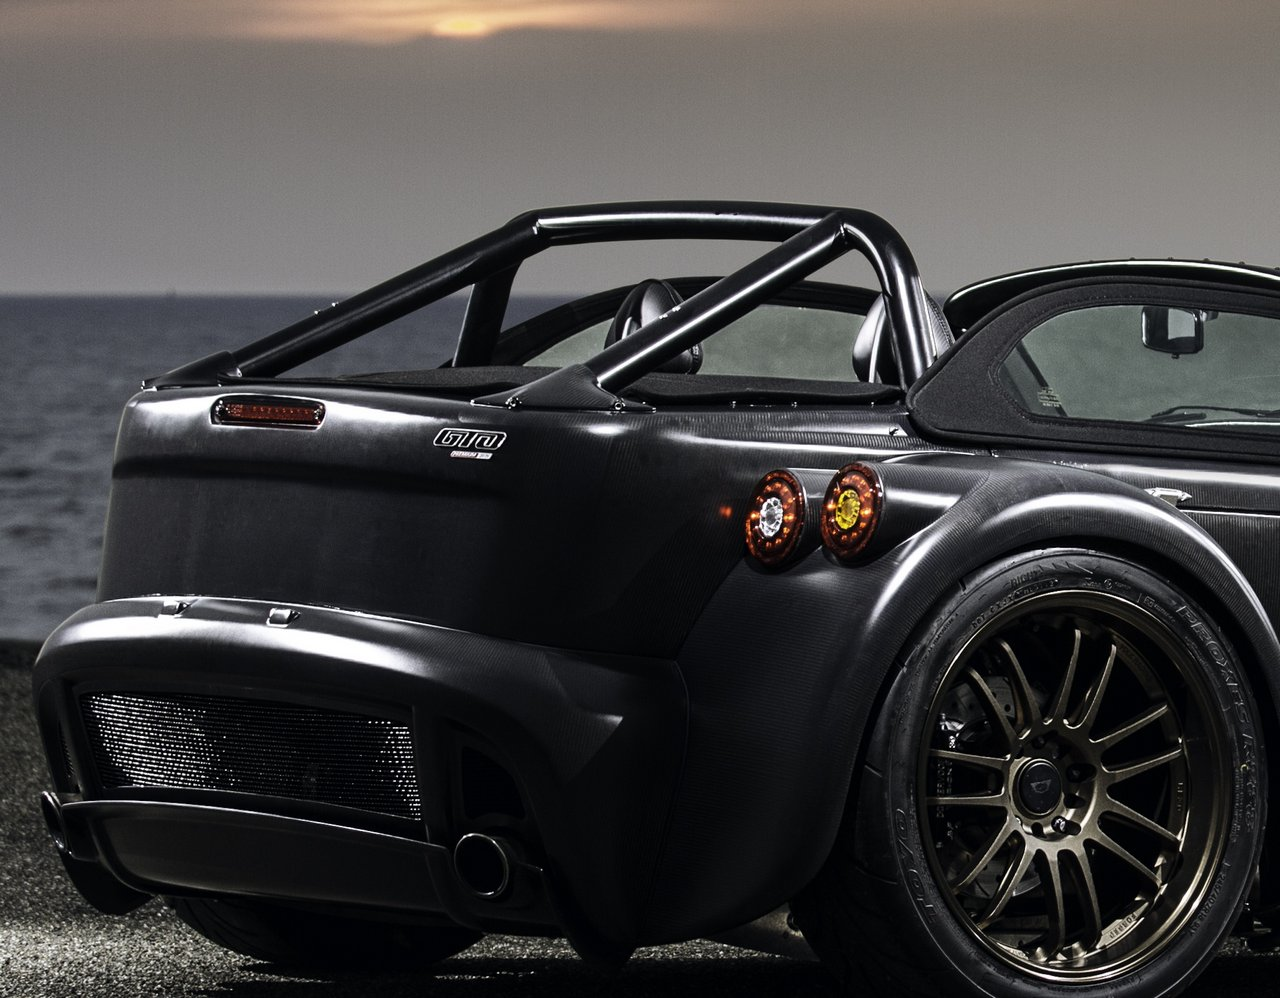 donkervoort-d8-gto-bare-naked-carbon-edition_0-100-9